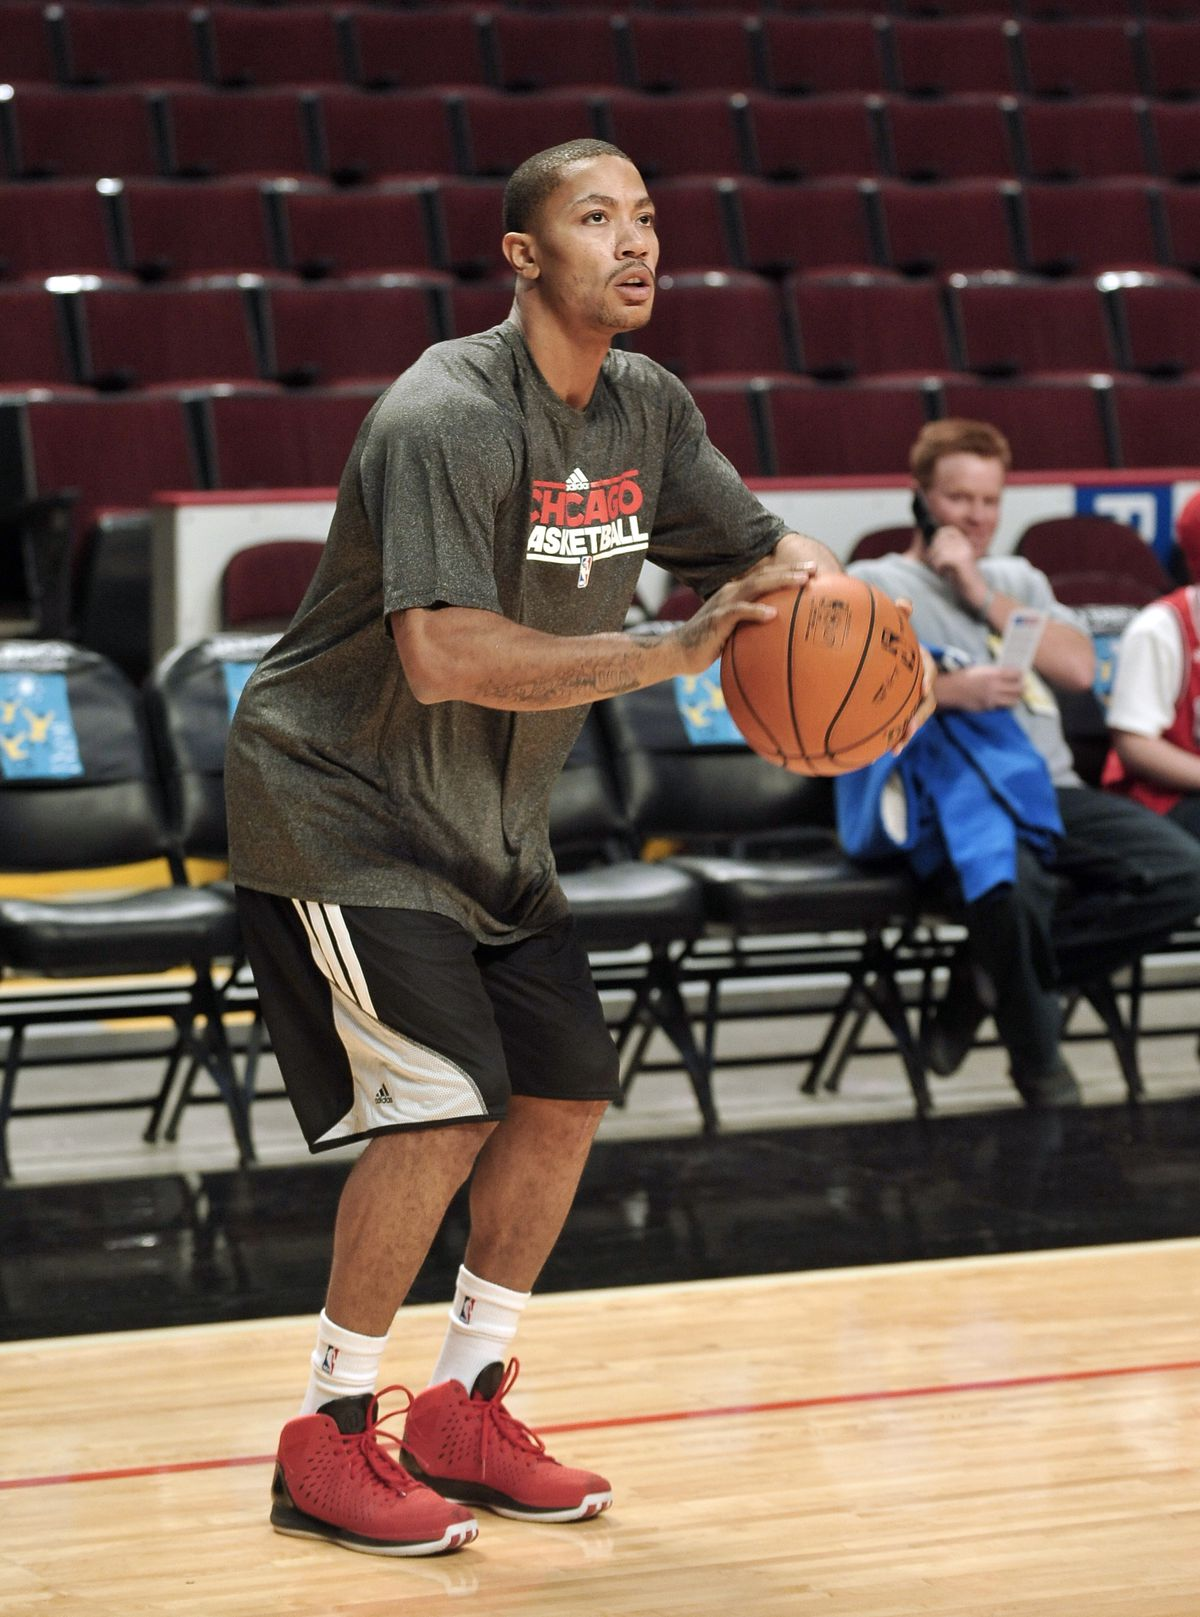 b8820dd1fa58 Injured Bulls guard Derrick Rose worksout for a brief time before the  Chicago Bulls take on